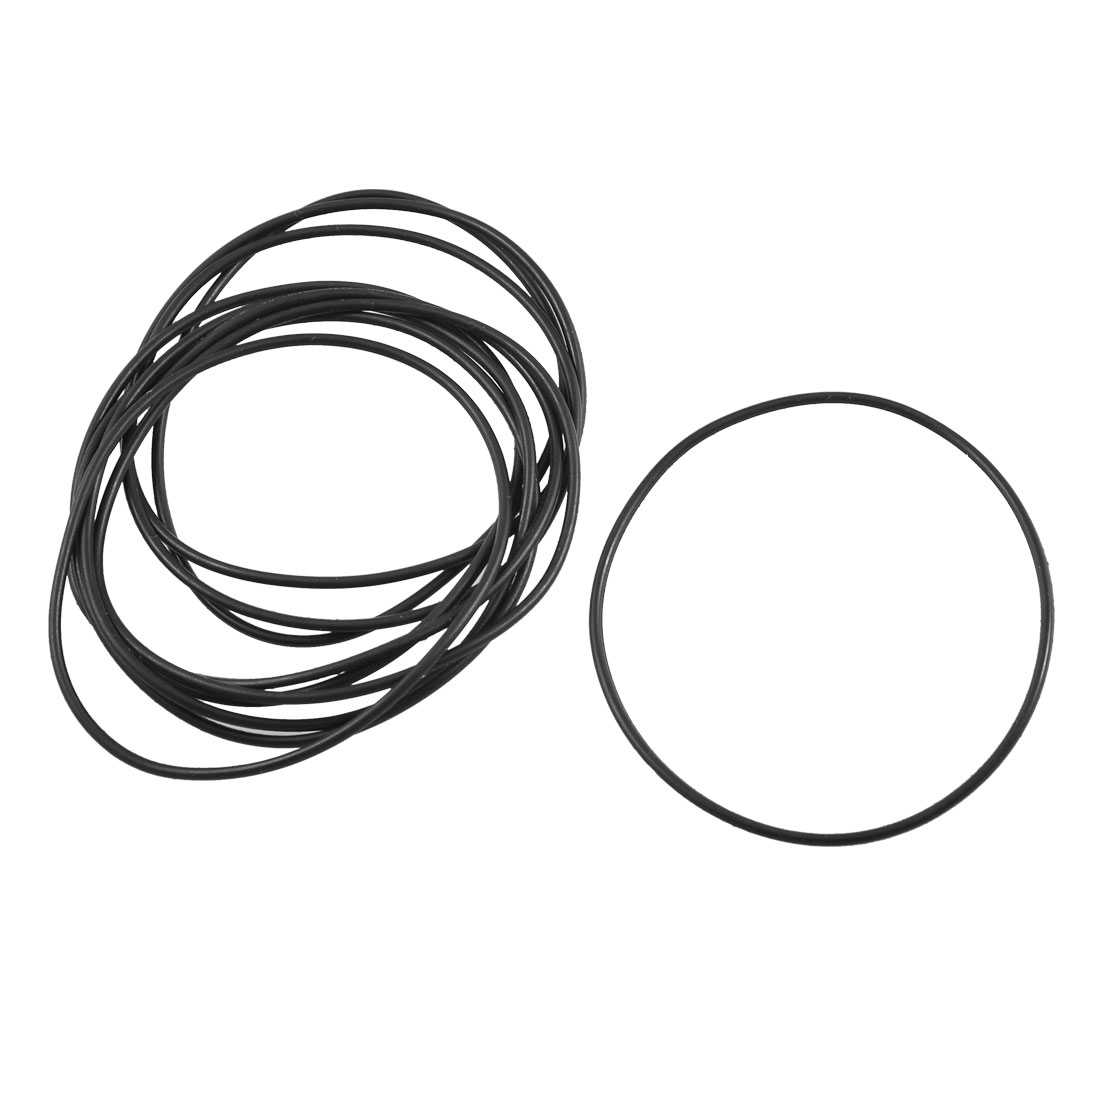 10 Pcs Black Rubber Oil Seal O Ring Sealing Gaskets 58mm x 55mm x 1.5mm